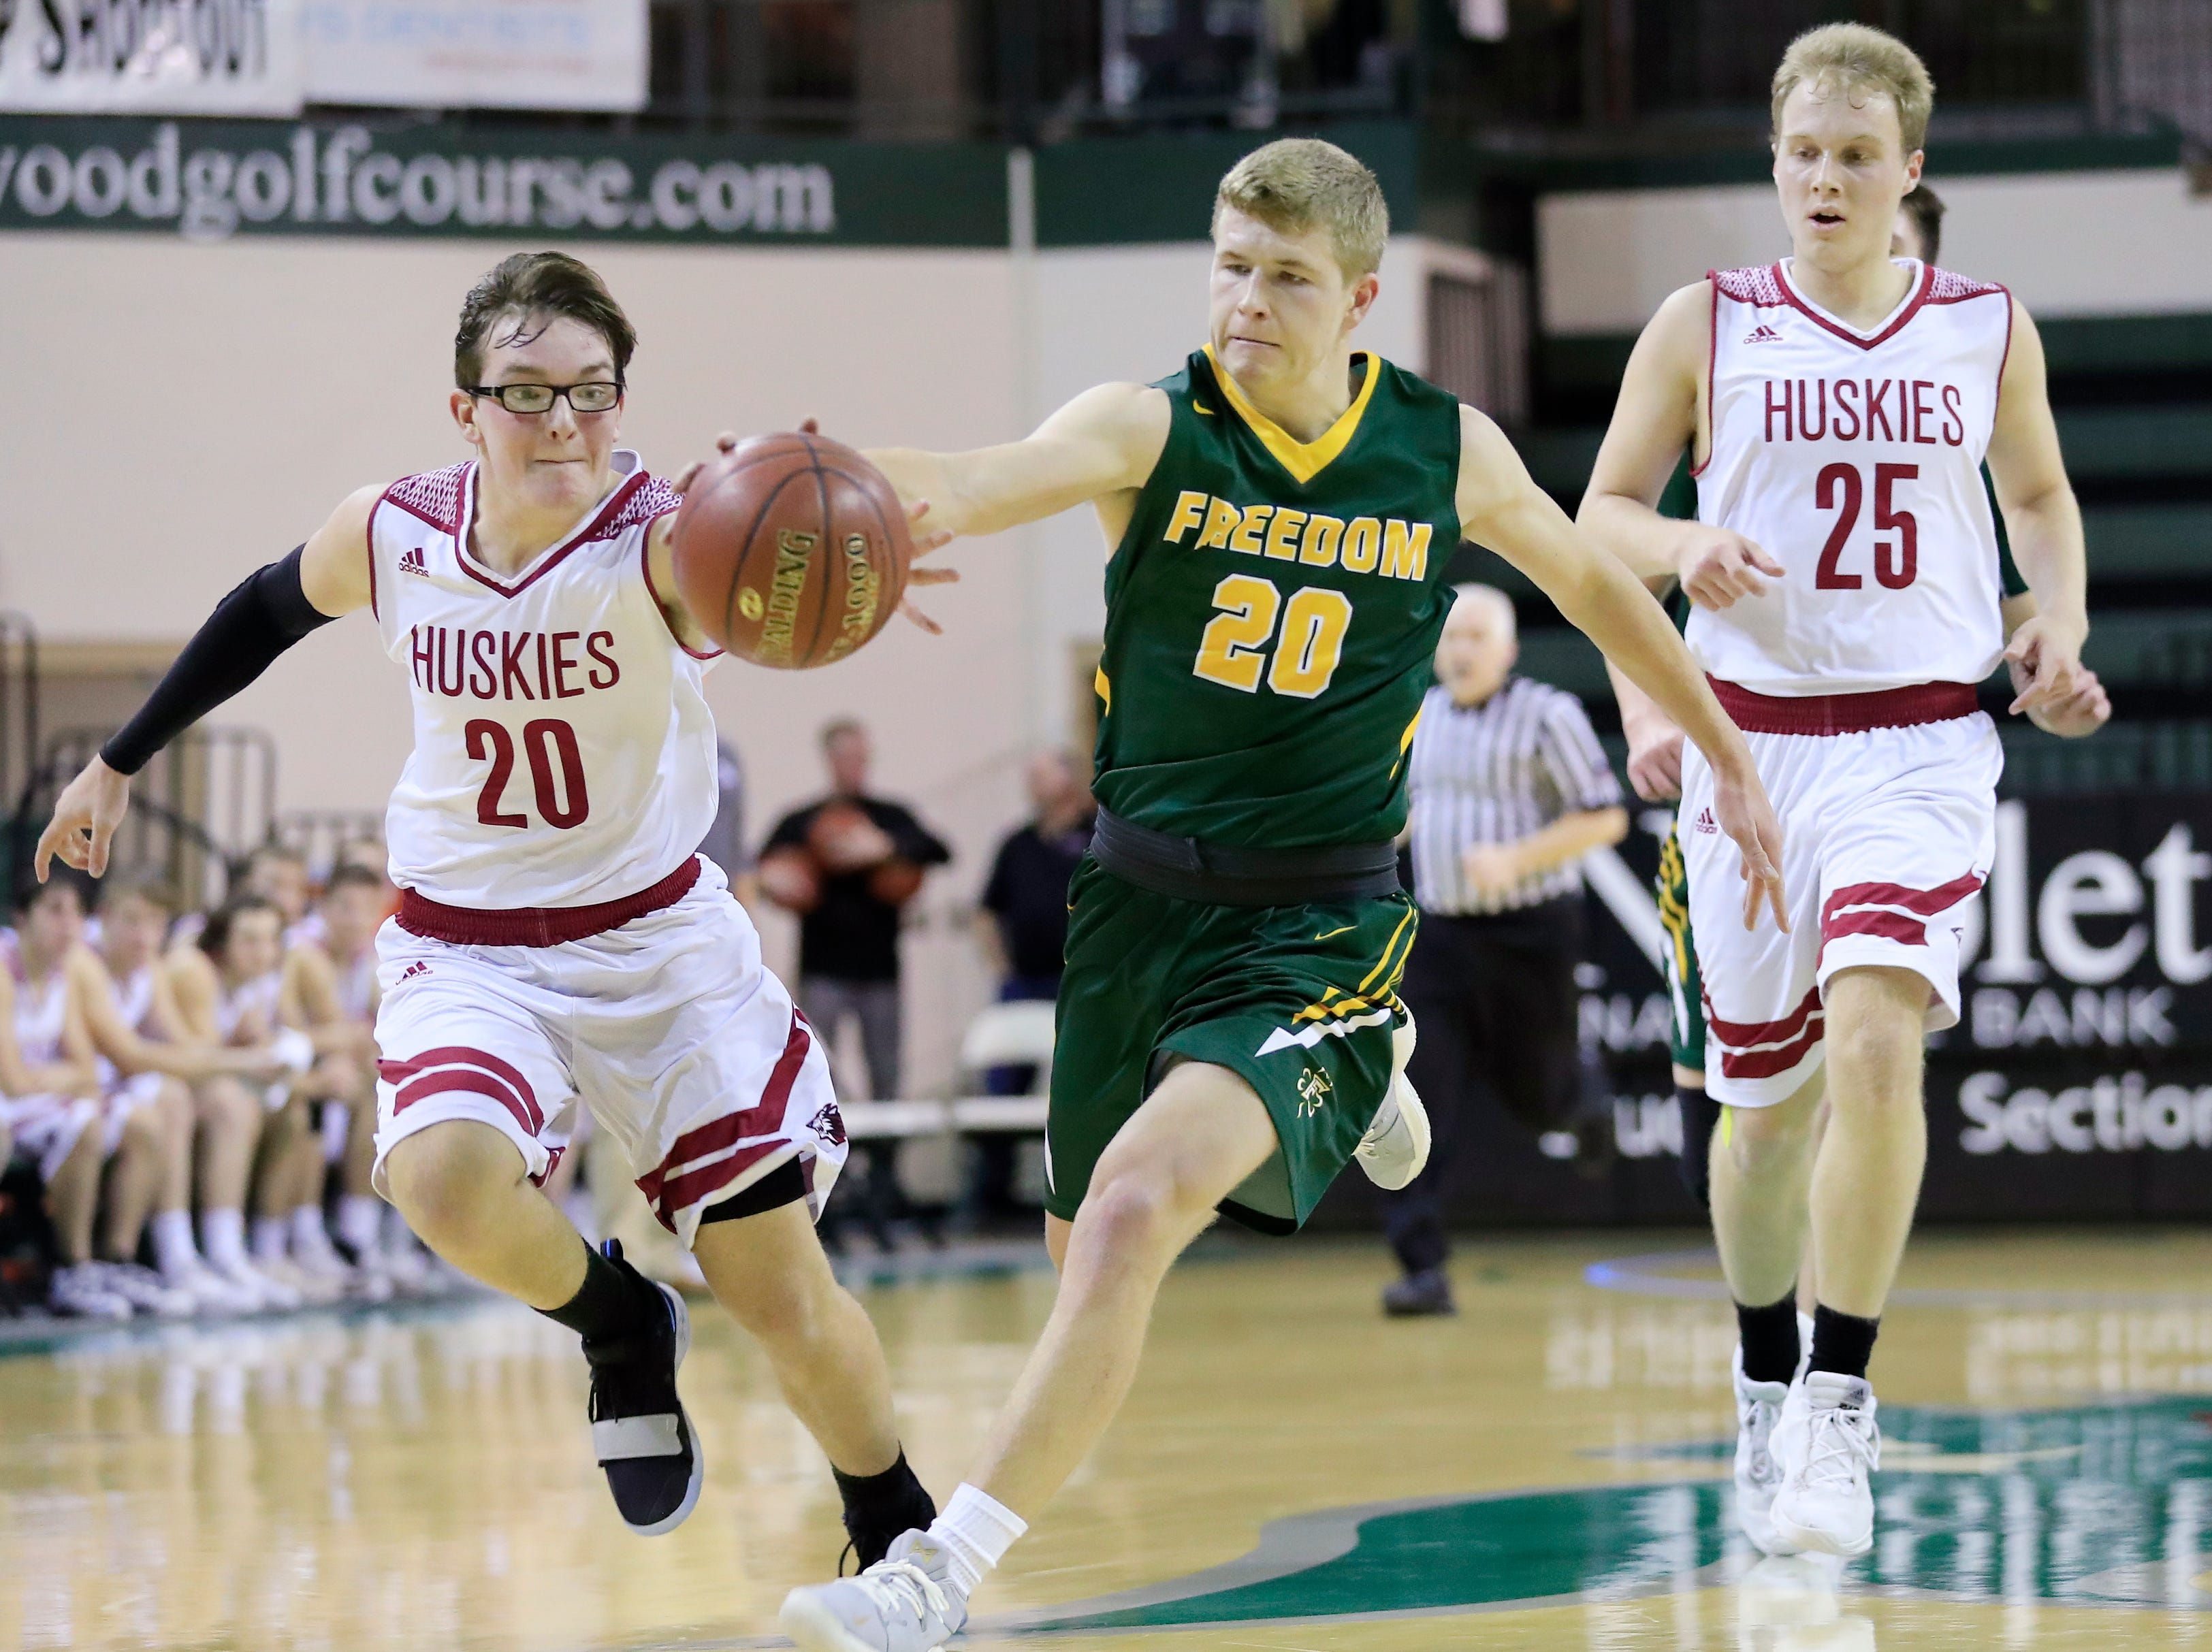 Freedom's Bryce Vandenberg (20) and New Holstein's Dayne Jacobson (20) compete for a loose ball at the Sun Drop Shootout at the Kress Center on Thursday, December 27, 2018 in Green Bay, Wis.